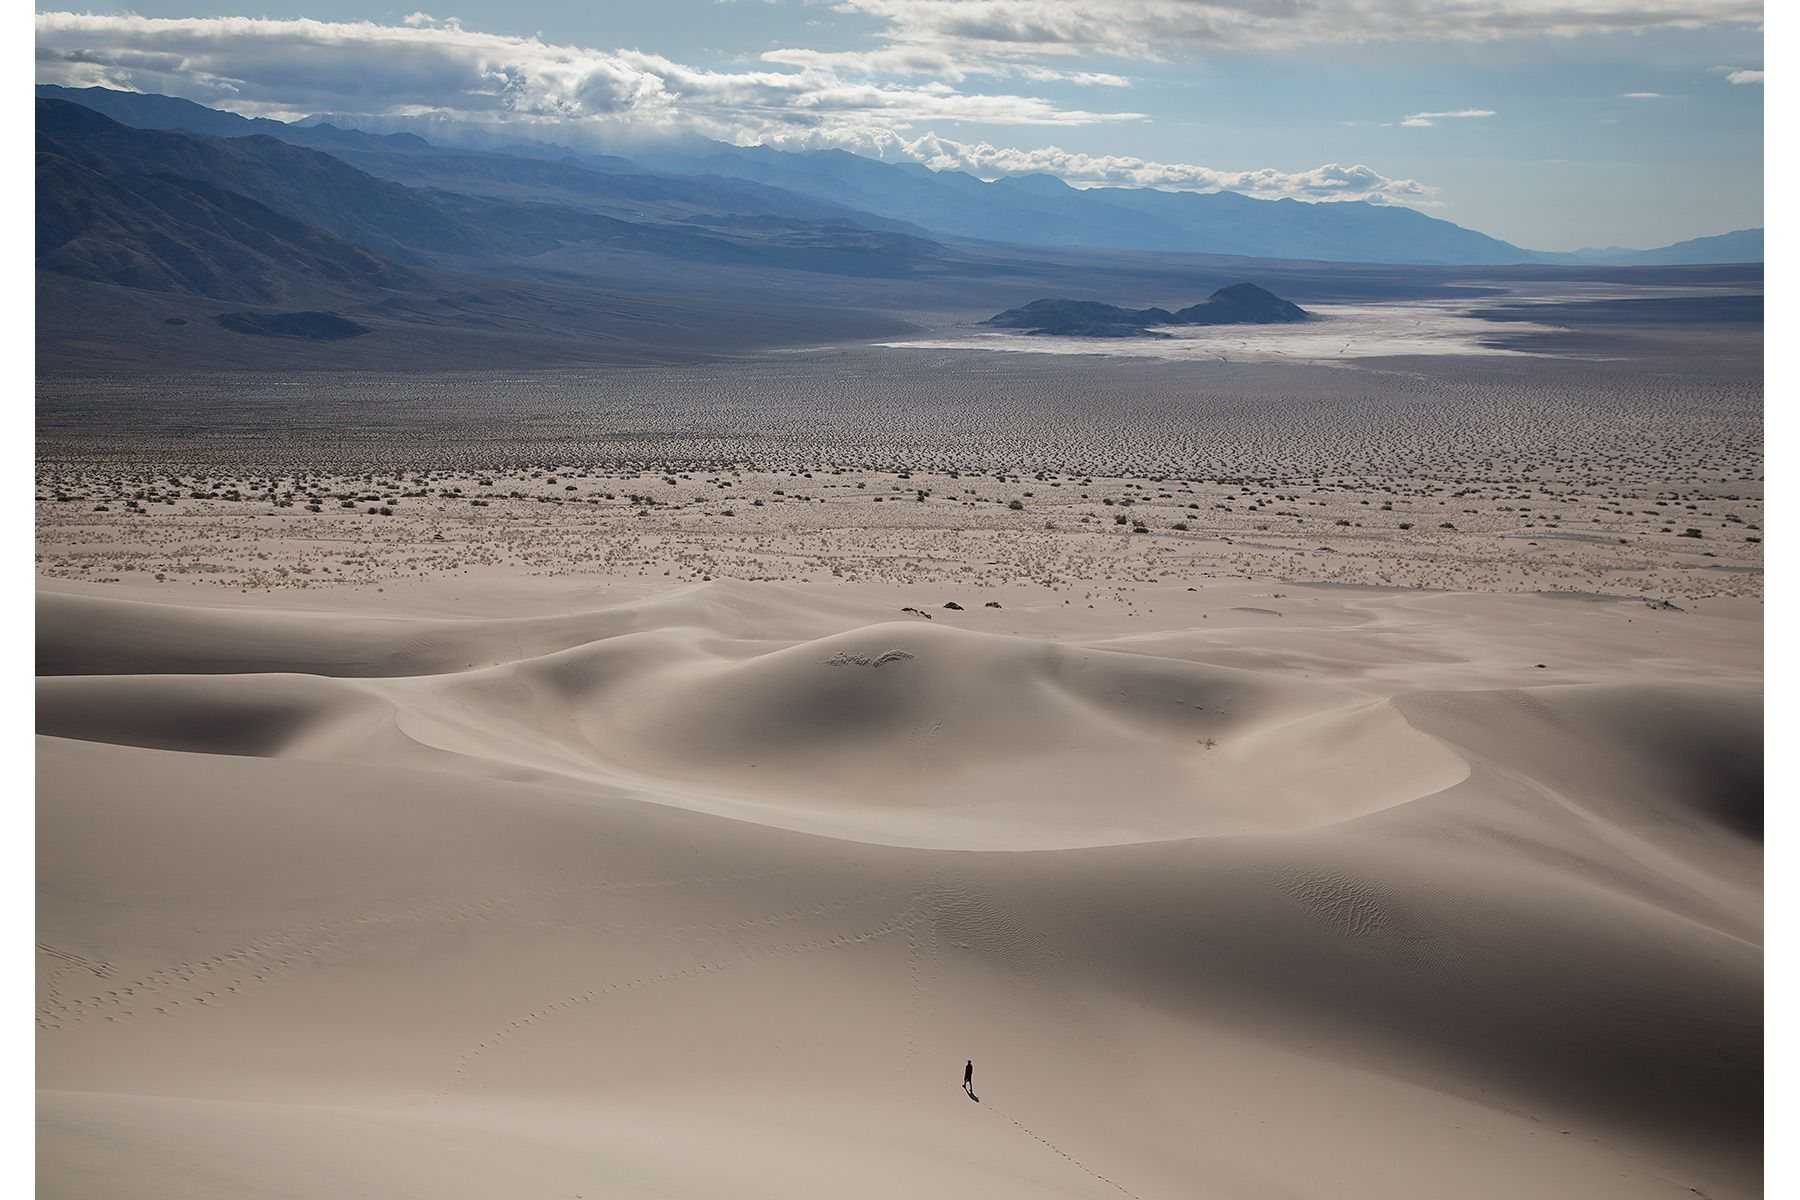 Panamint Valley Sand Dunes